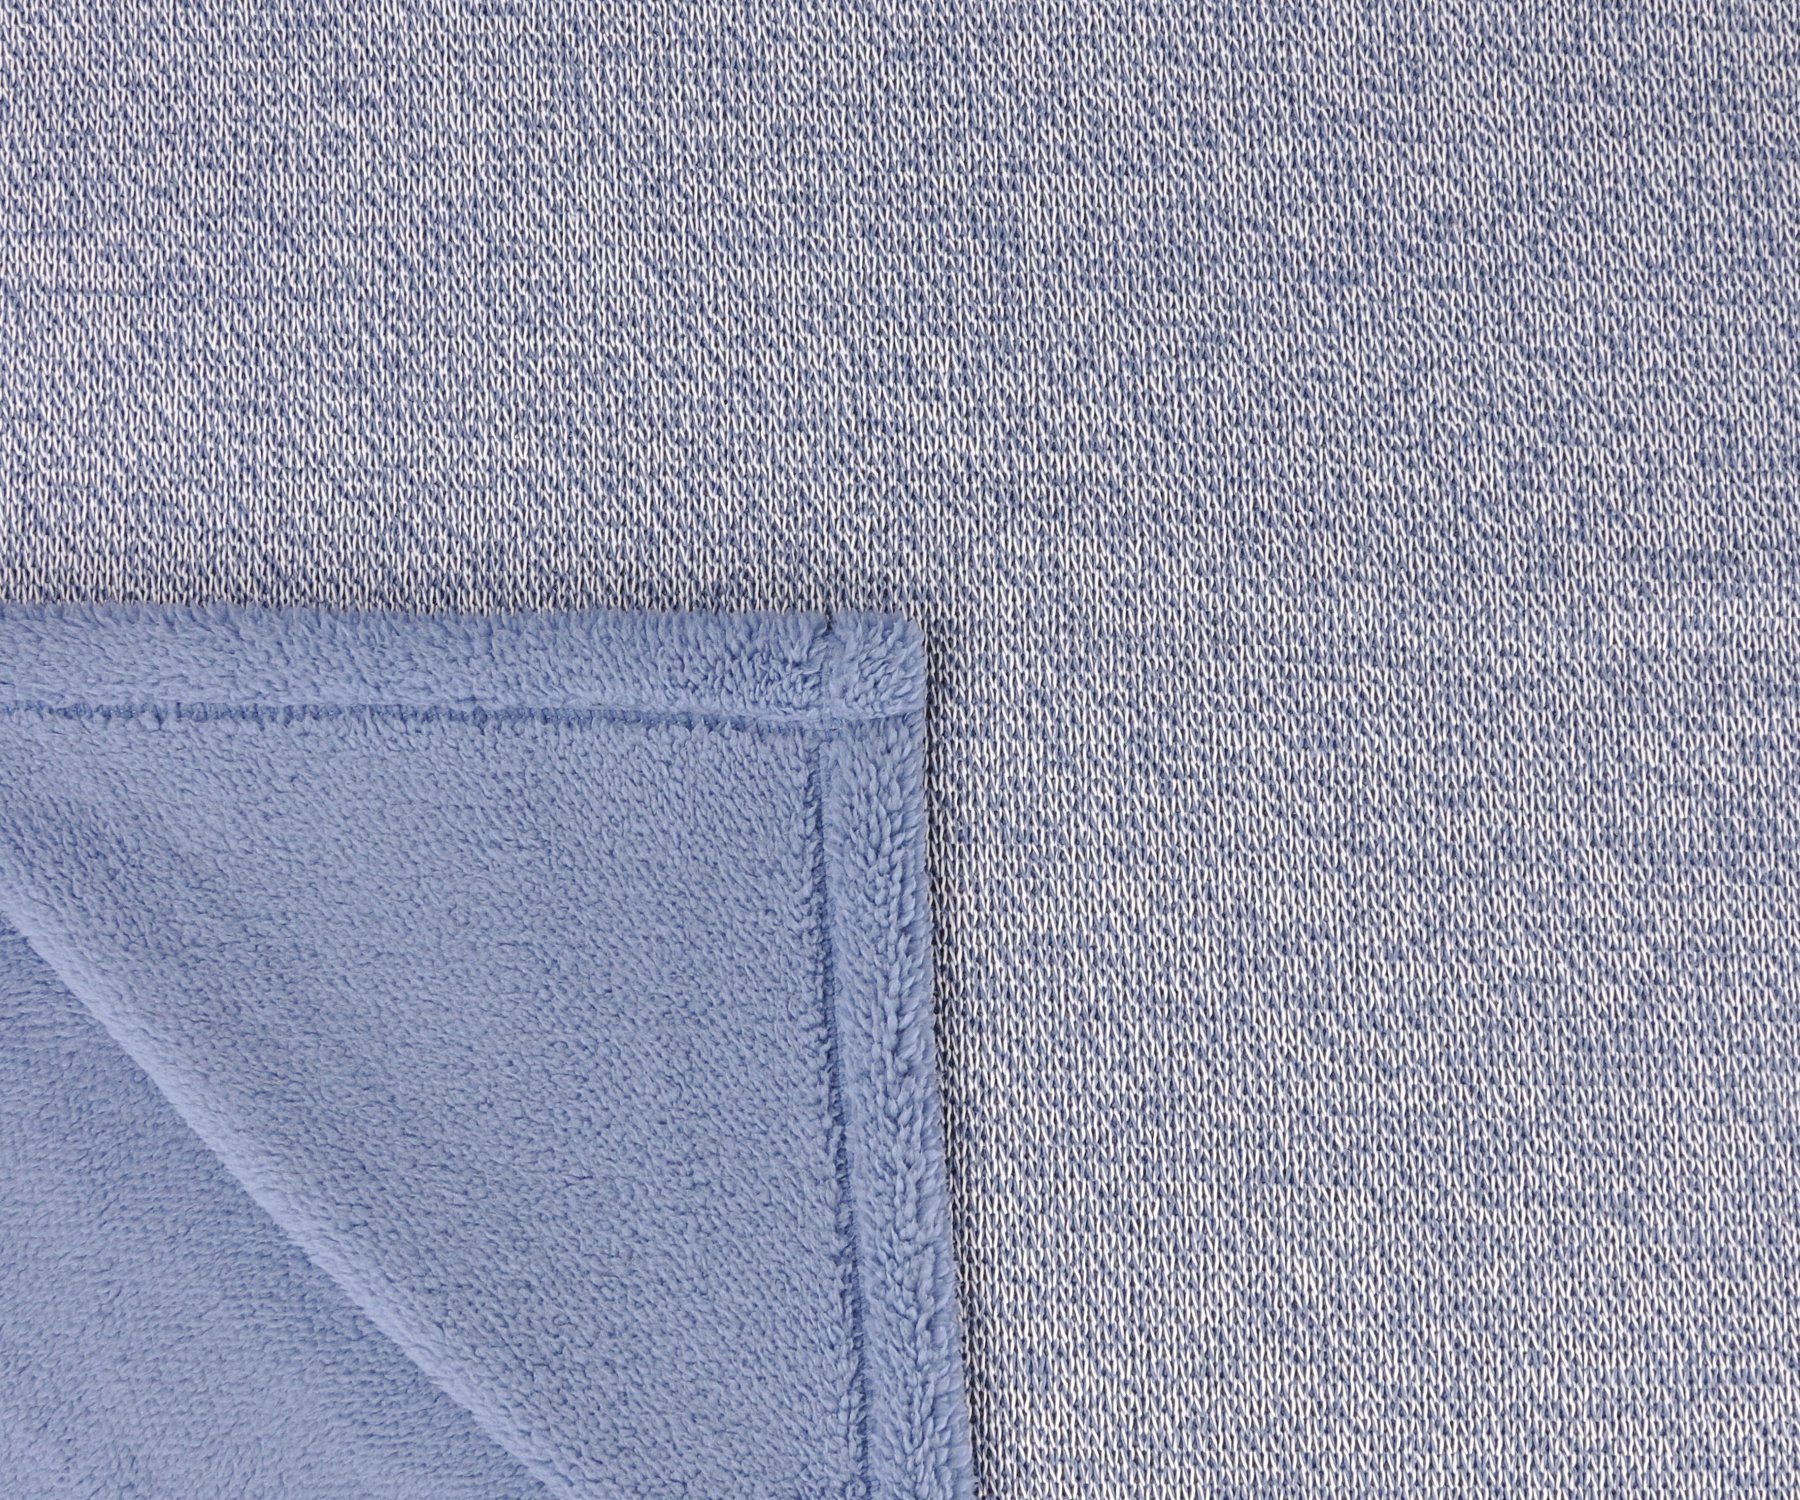 Sherpa Throw Blanket Super Soft Cozy with Plush Fleece for Coach and Bed | Size 50''x 60'' Reversible Warm Knitted Blanket for All Season Blue by Terrania (Image #3)